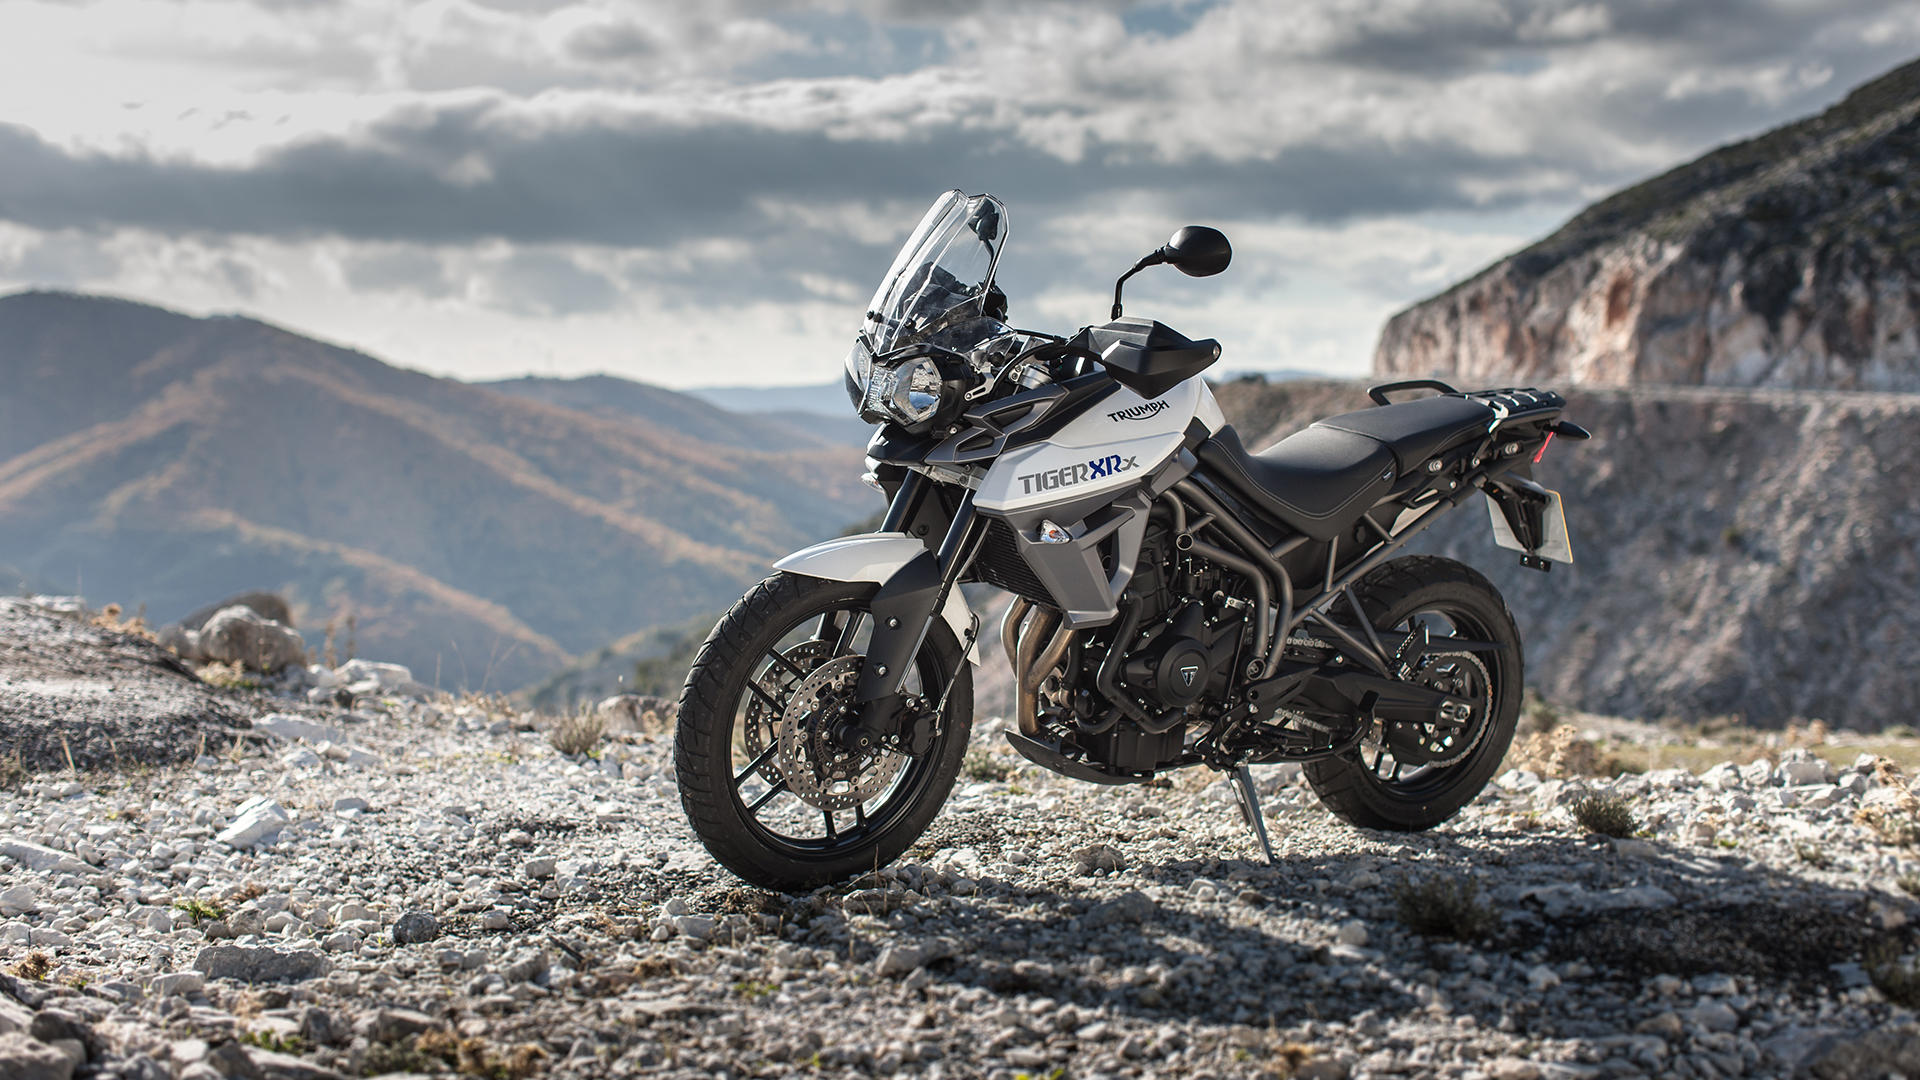 Triumph Tiger 800 2015 Xrx Price Mileage Reviews